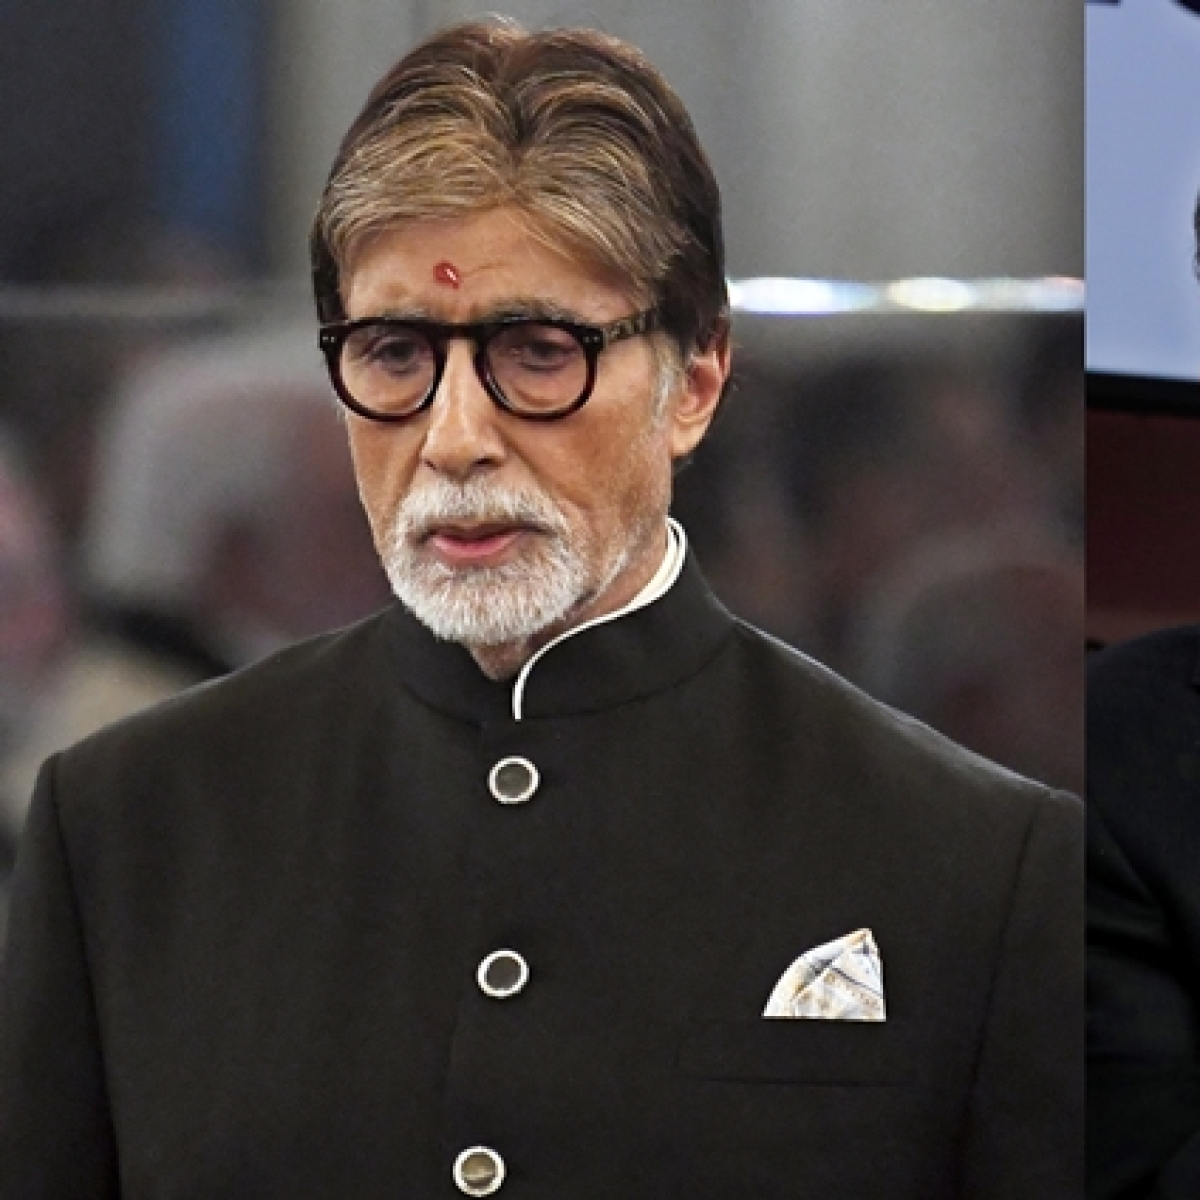 Uninstall WhatsApp: Now a Change.org petition to delete app from Amitabh Bachchan and Anand Mahindra's phones